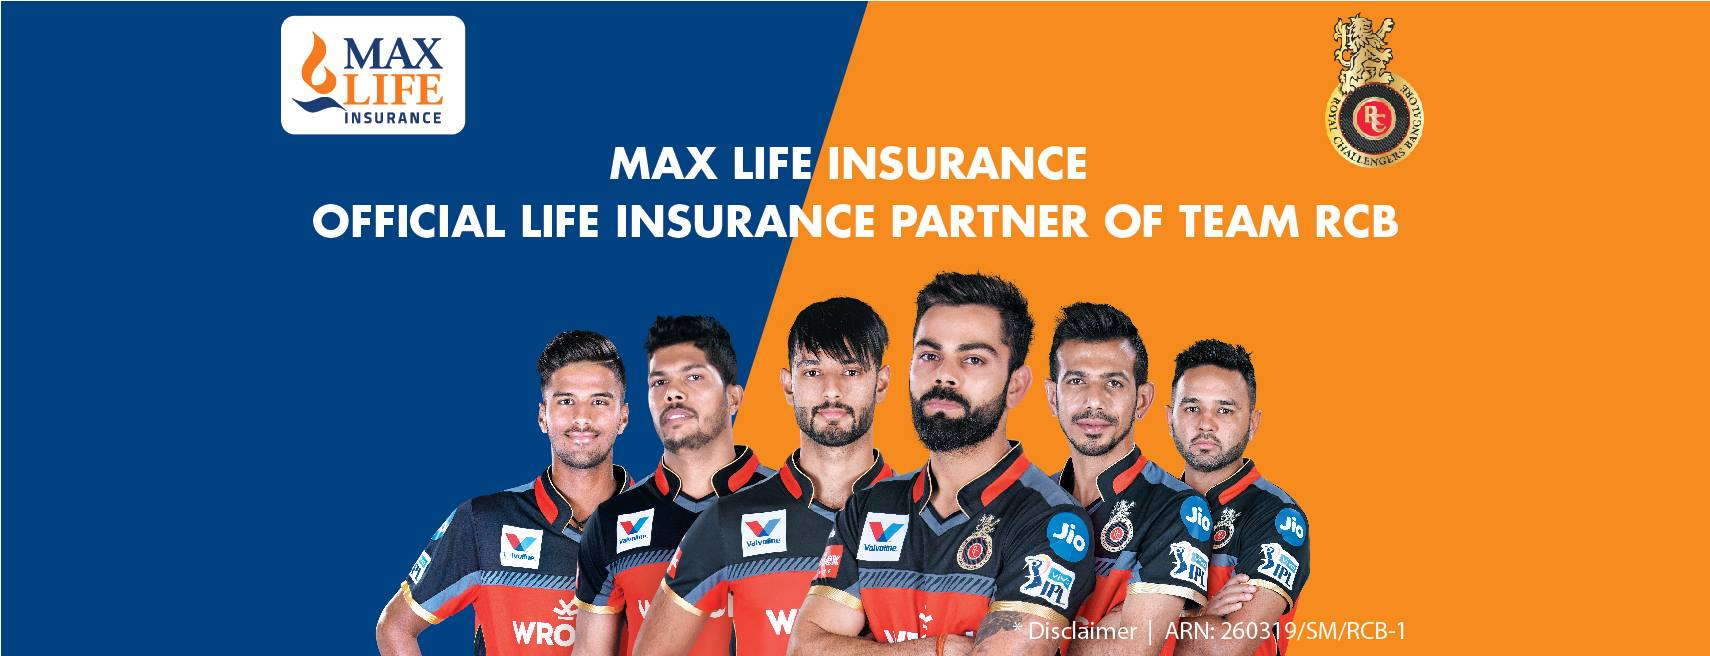 Max Life Insurance Ads - The Power of Advertisement